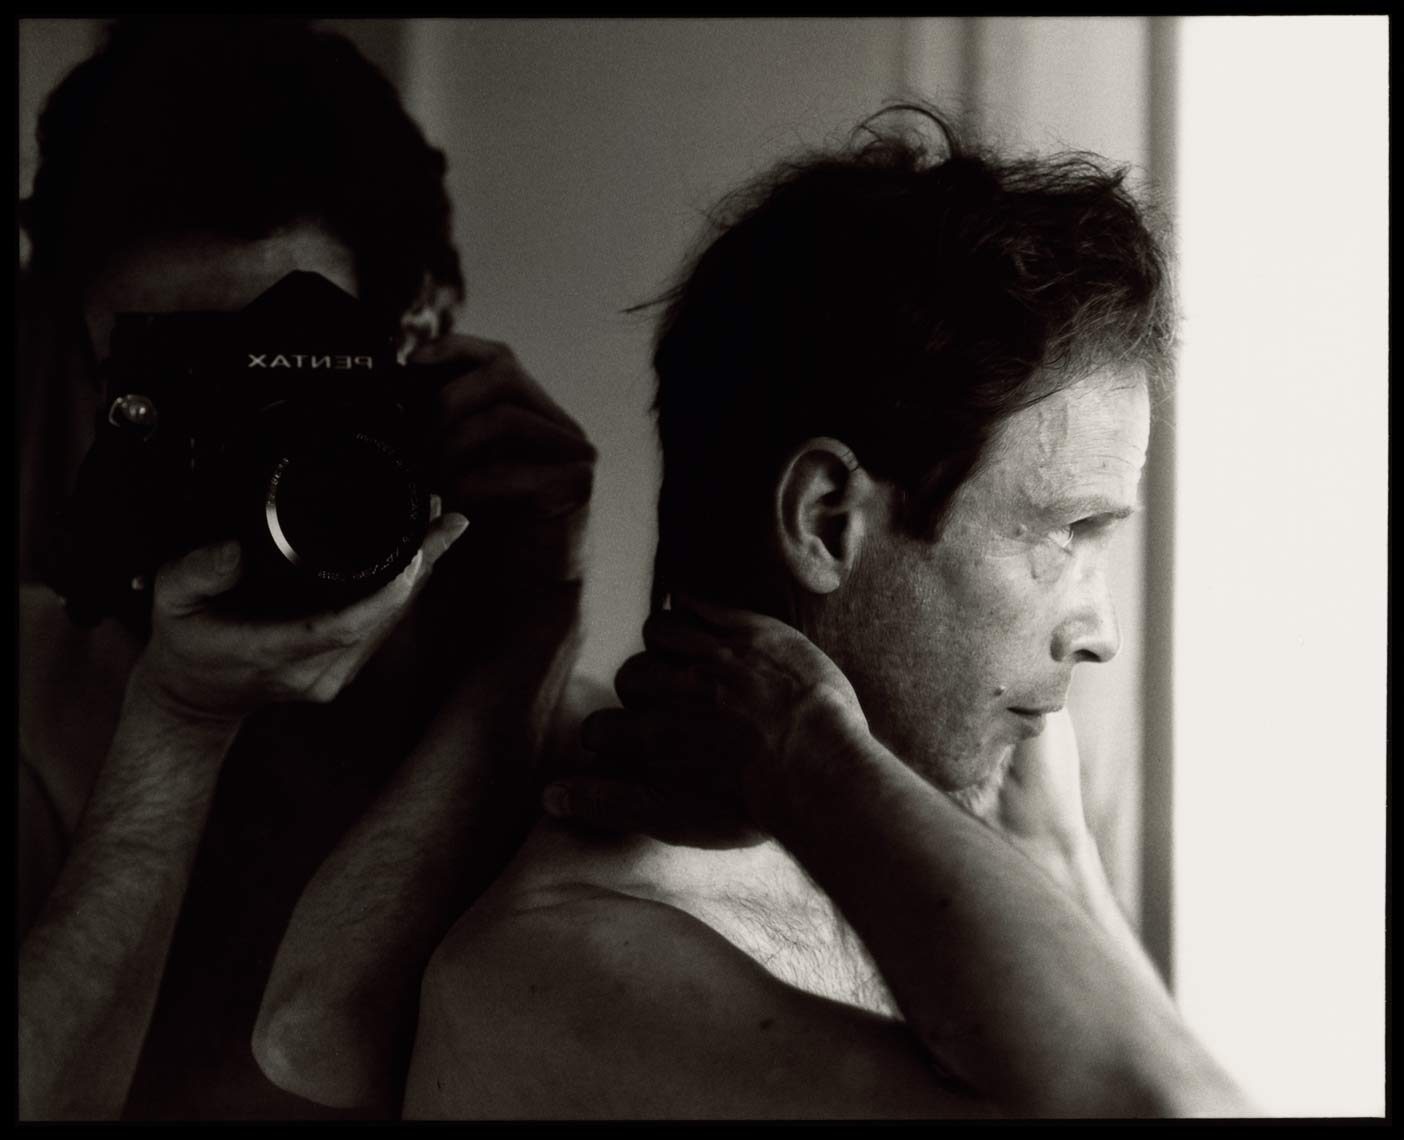 David Lebe; Morning Ritual 26, 1994, black and white photograph about living with AIDS